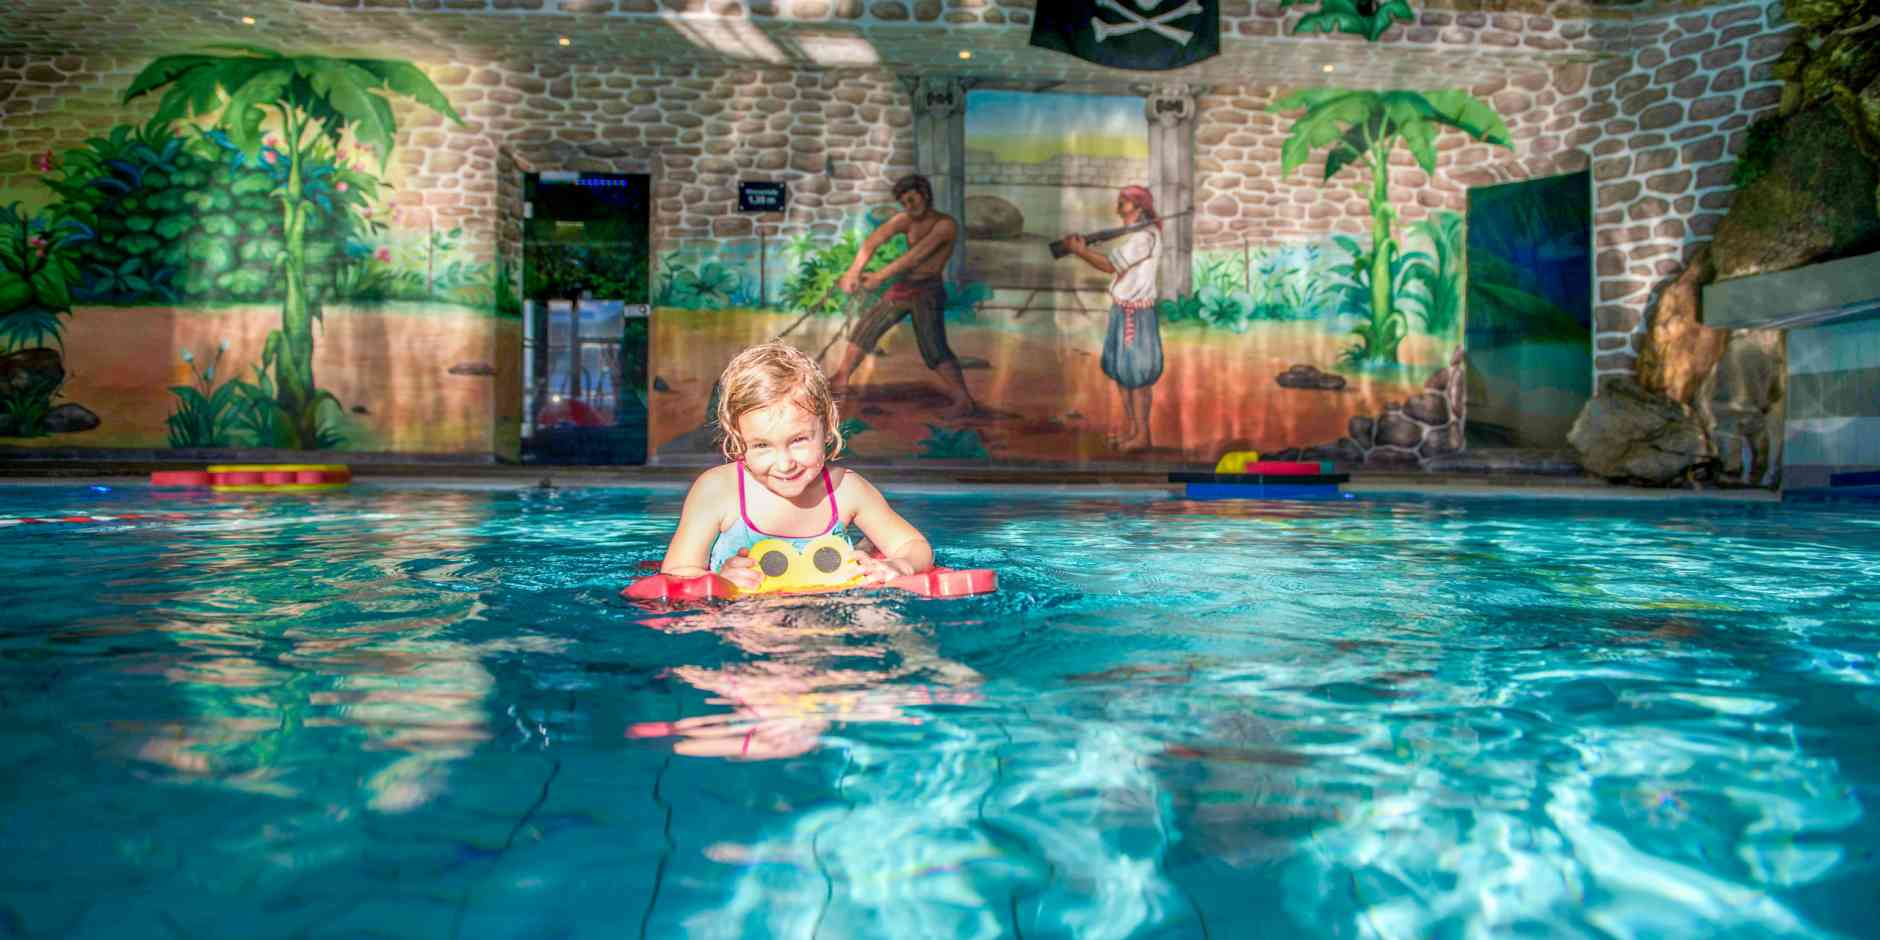 Kinder Pool in der Piratenwelt